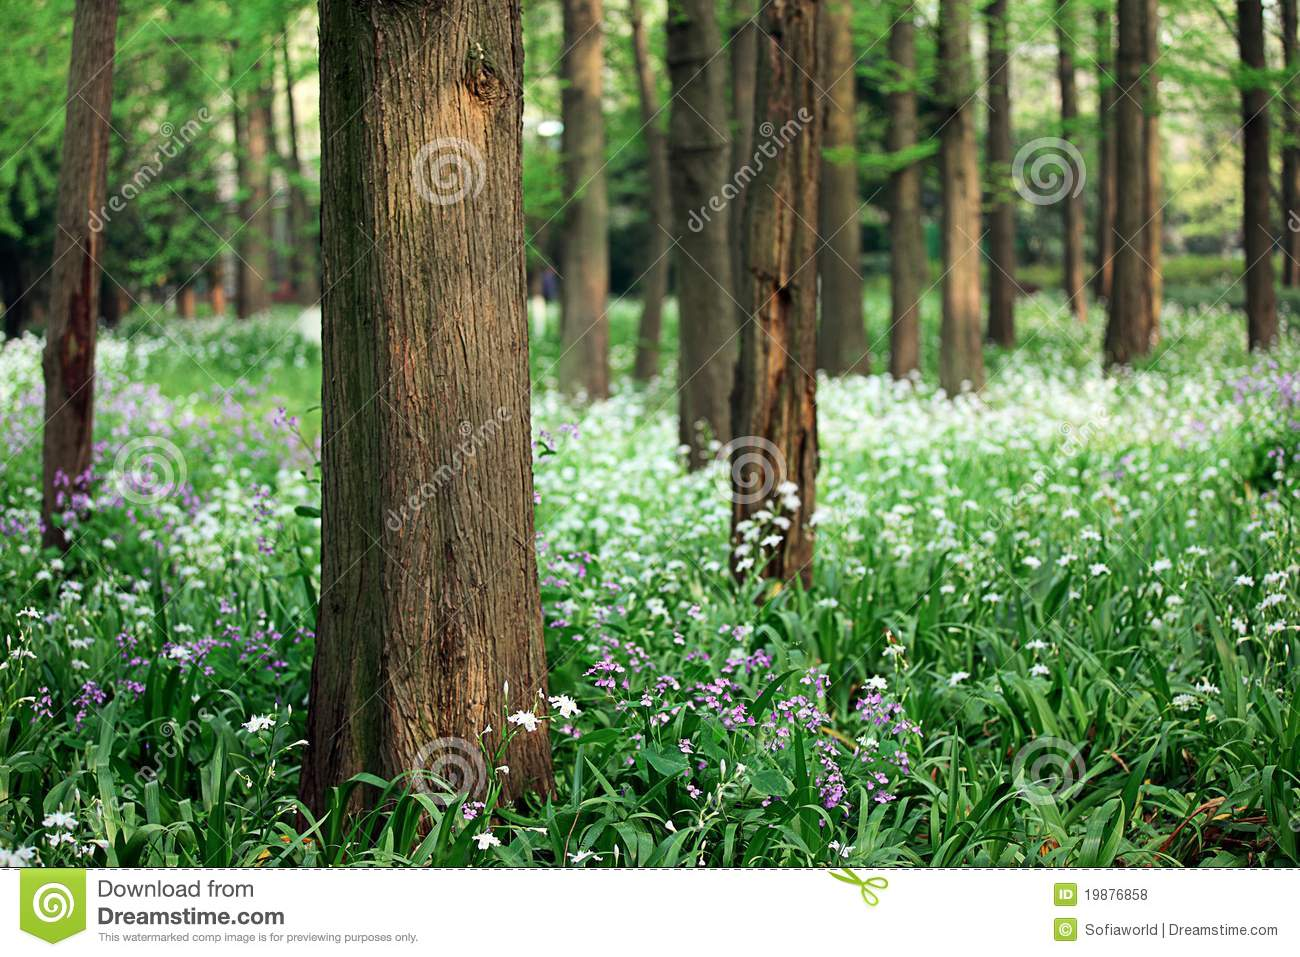 Scenic view of tree trunks with wild flowers royalty free stock photos image 19876858 - Flowers that grow on tree trunks ...